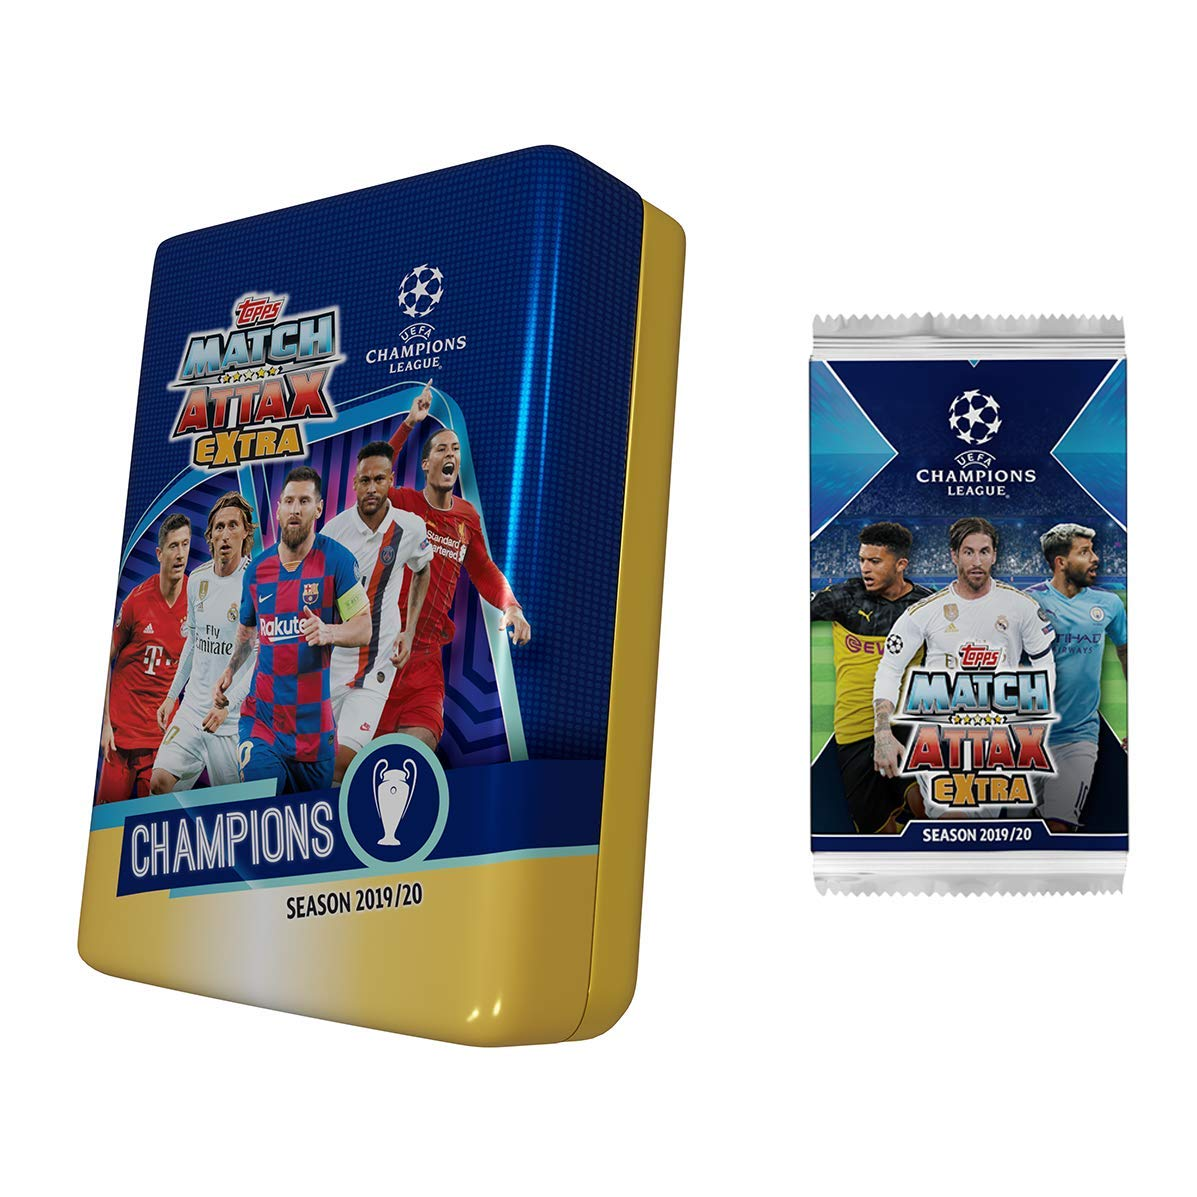 Champions League 2019-20 Topps Match Attax Extra Cards Mega Tin 50 Cards, 15 Exclusive Title Winners + LE Gold Salah Card Bonus Pack Includes Messi /& Ronaldo Cards!